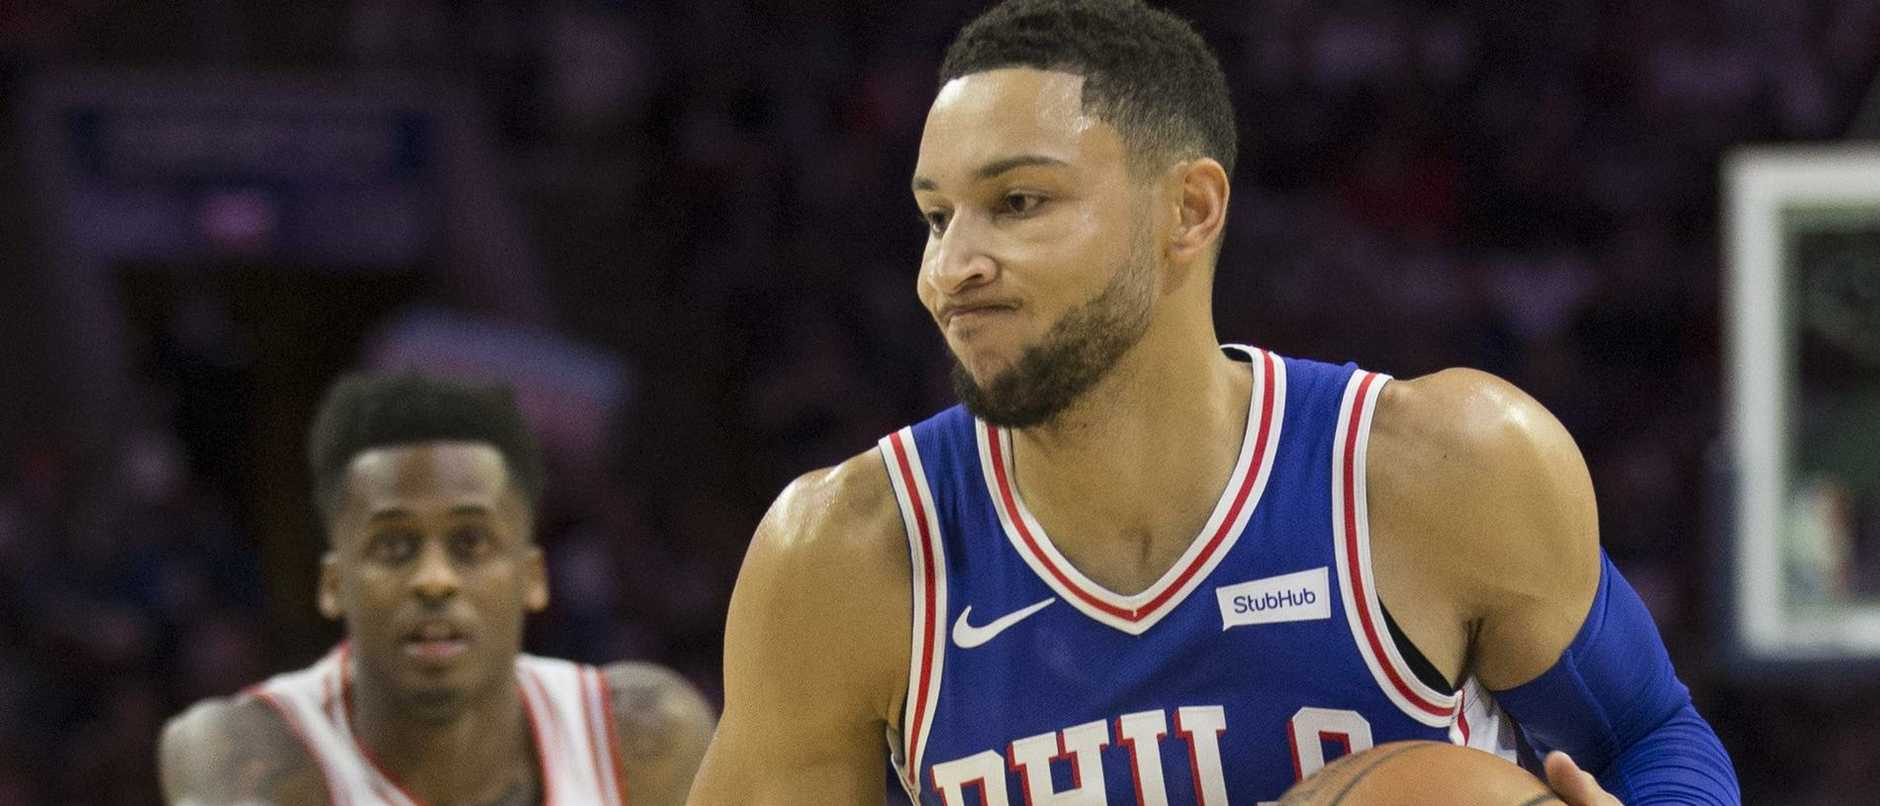 Ben Simmons has pulled out of the FIBA World Cup.